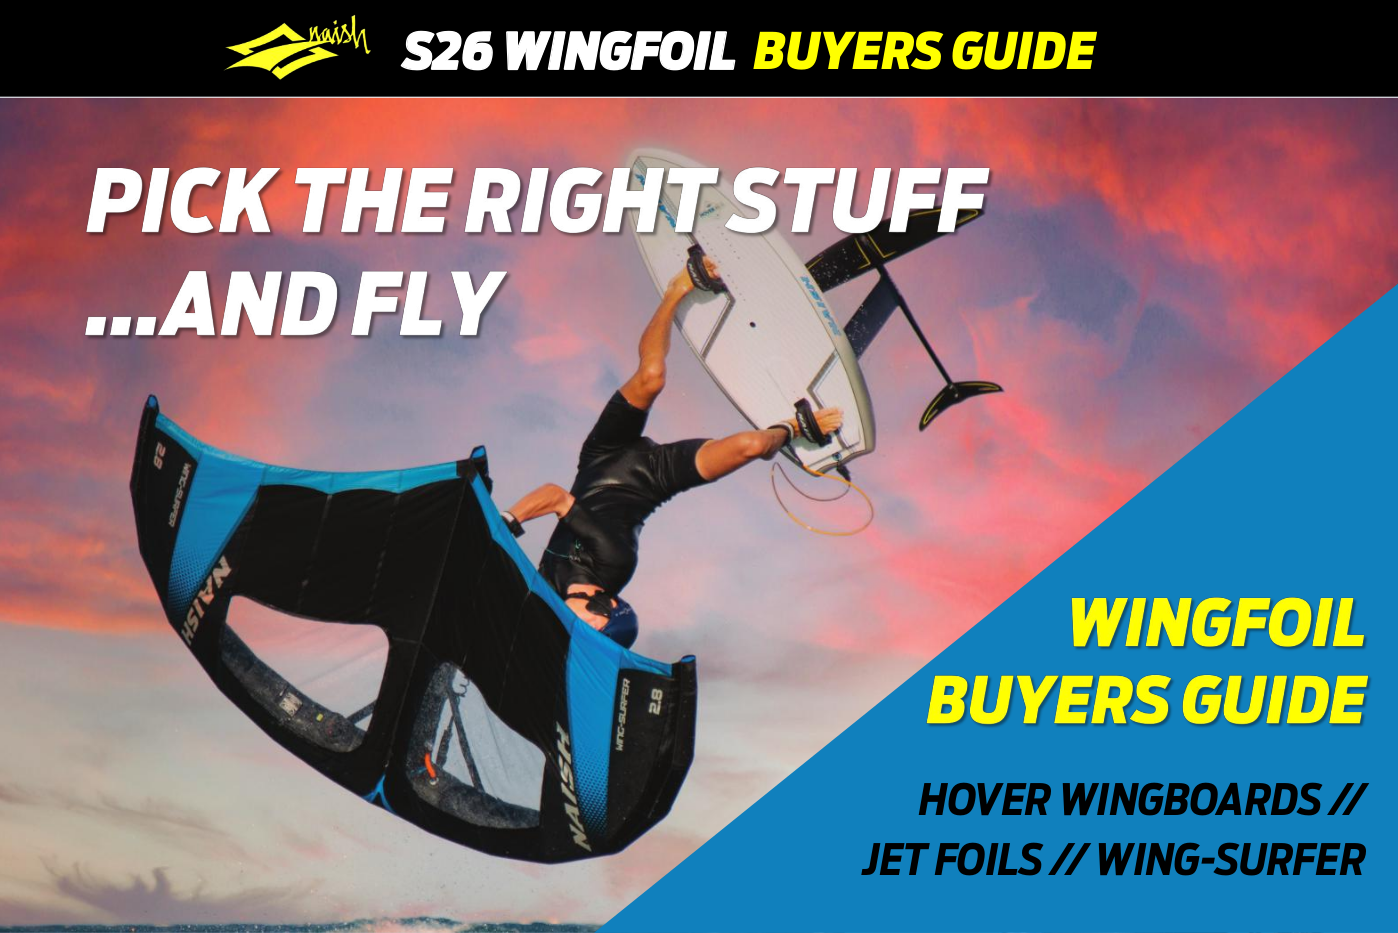 PICK THE RIGHT STUFF TO FLY // NAISH S26 WINGFOIL BUYERS GUIDE